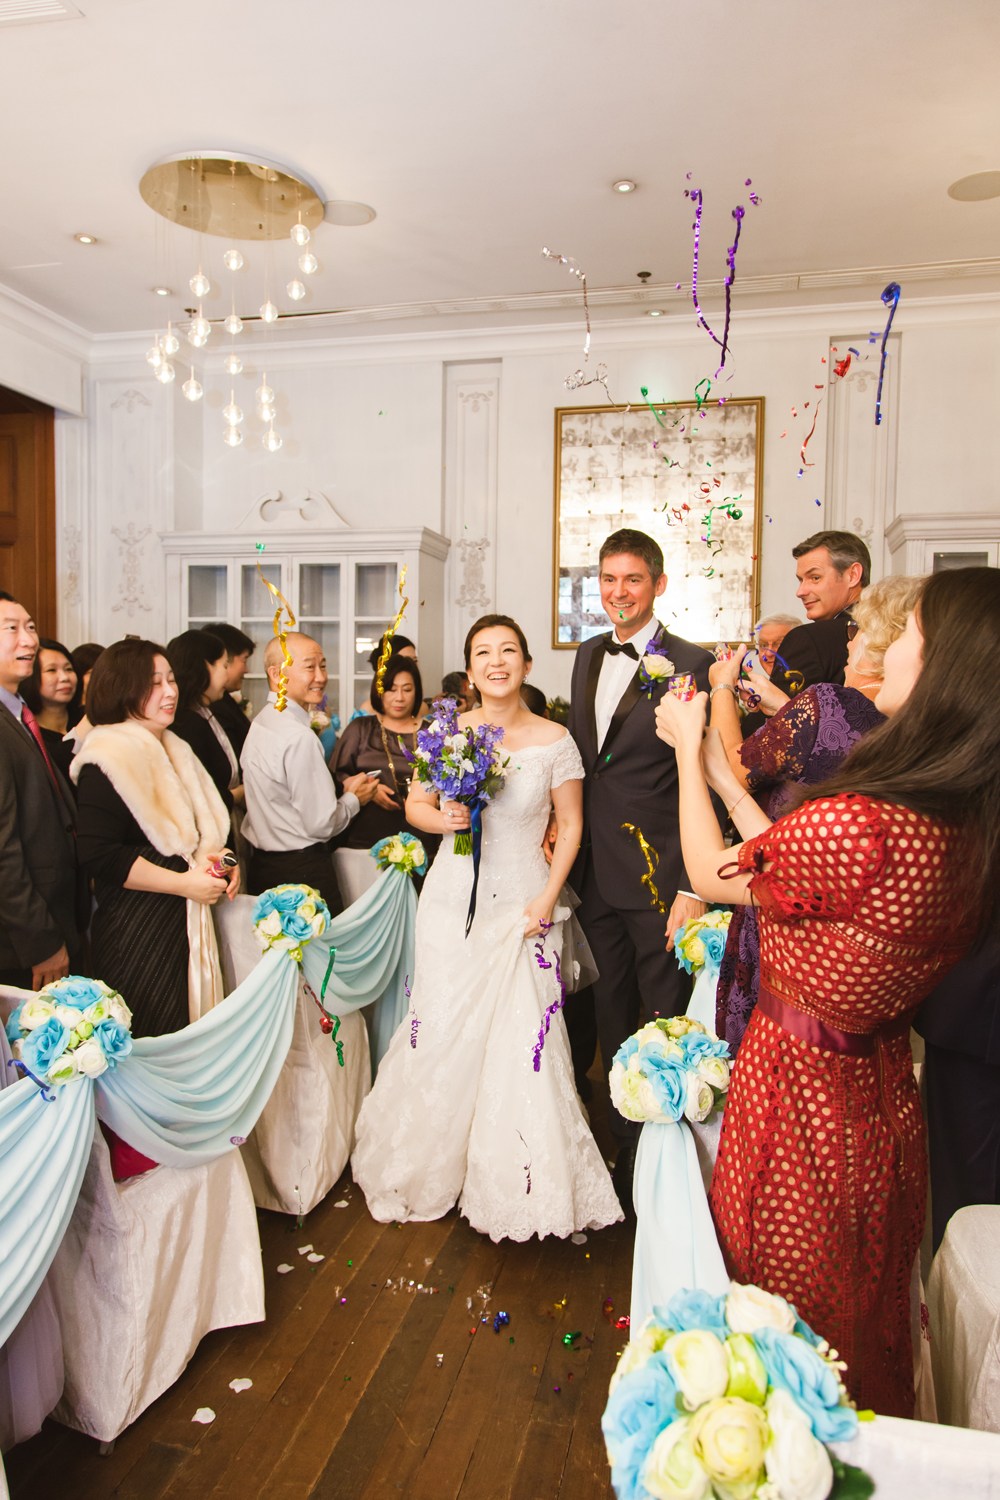 Wedding ceremony at Hullett House